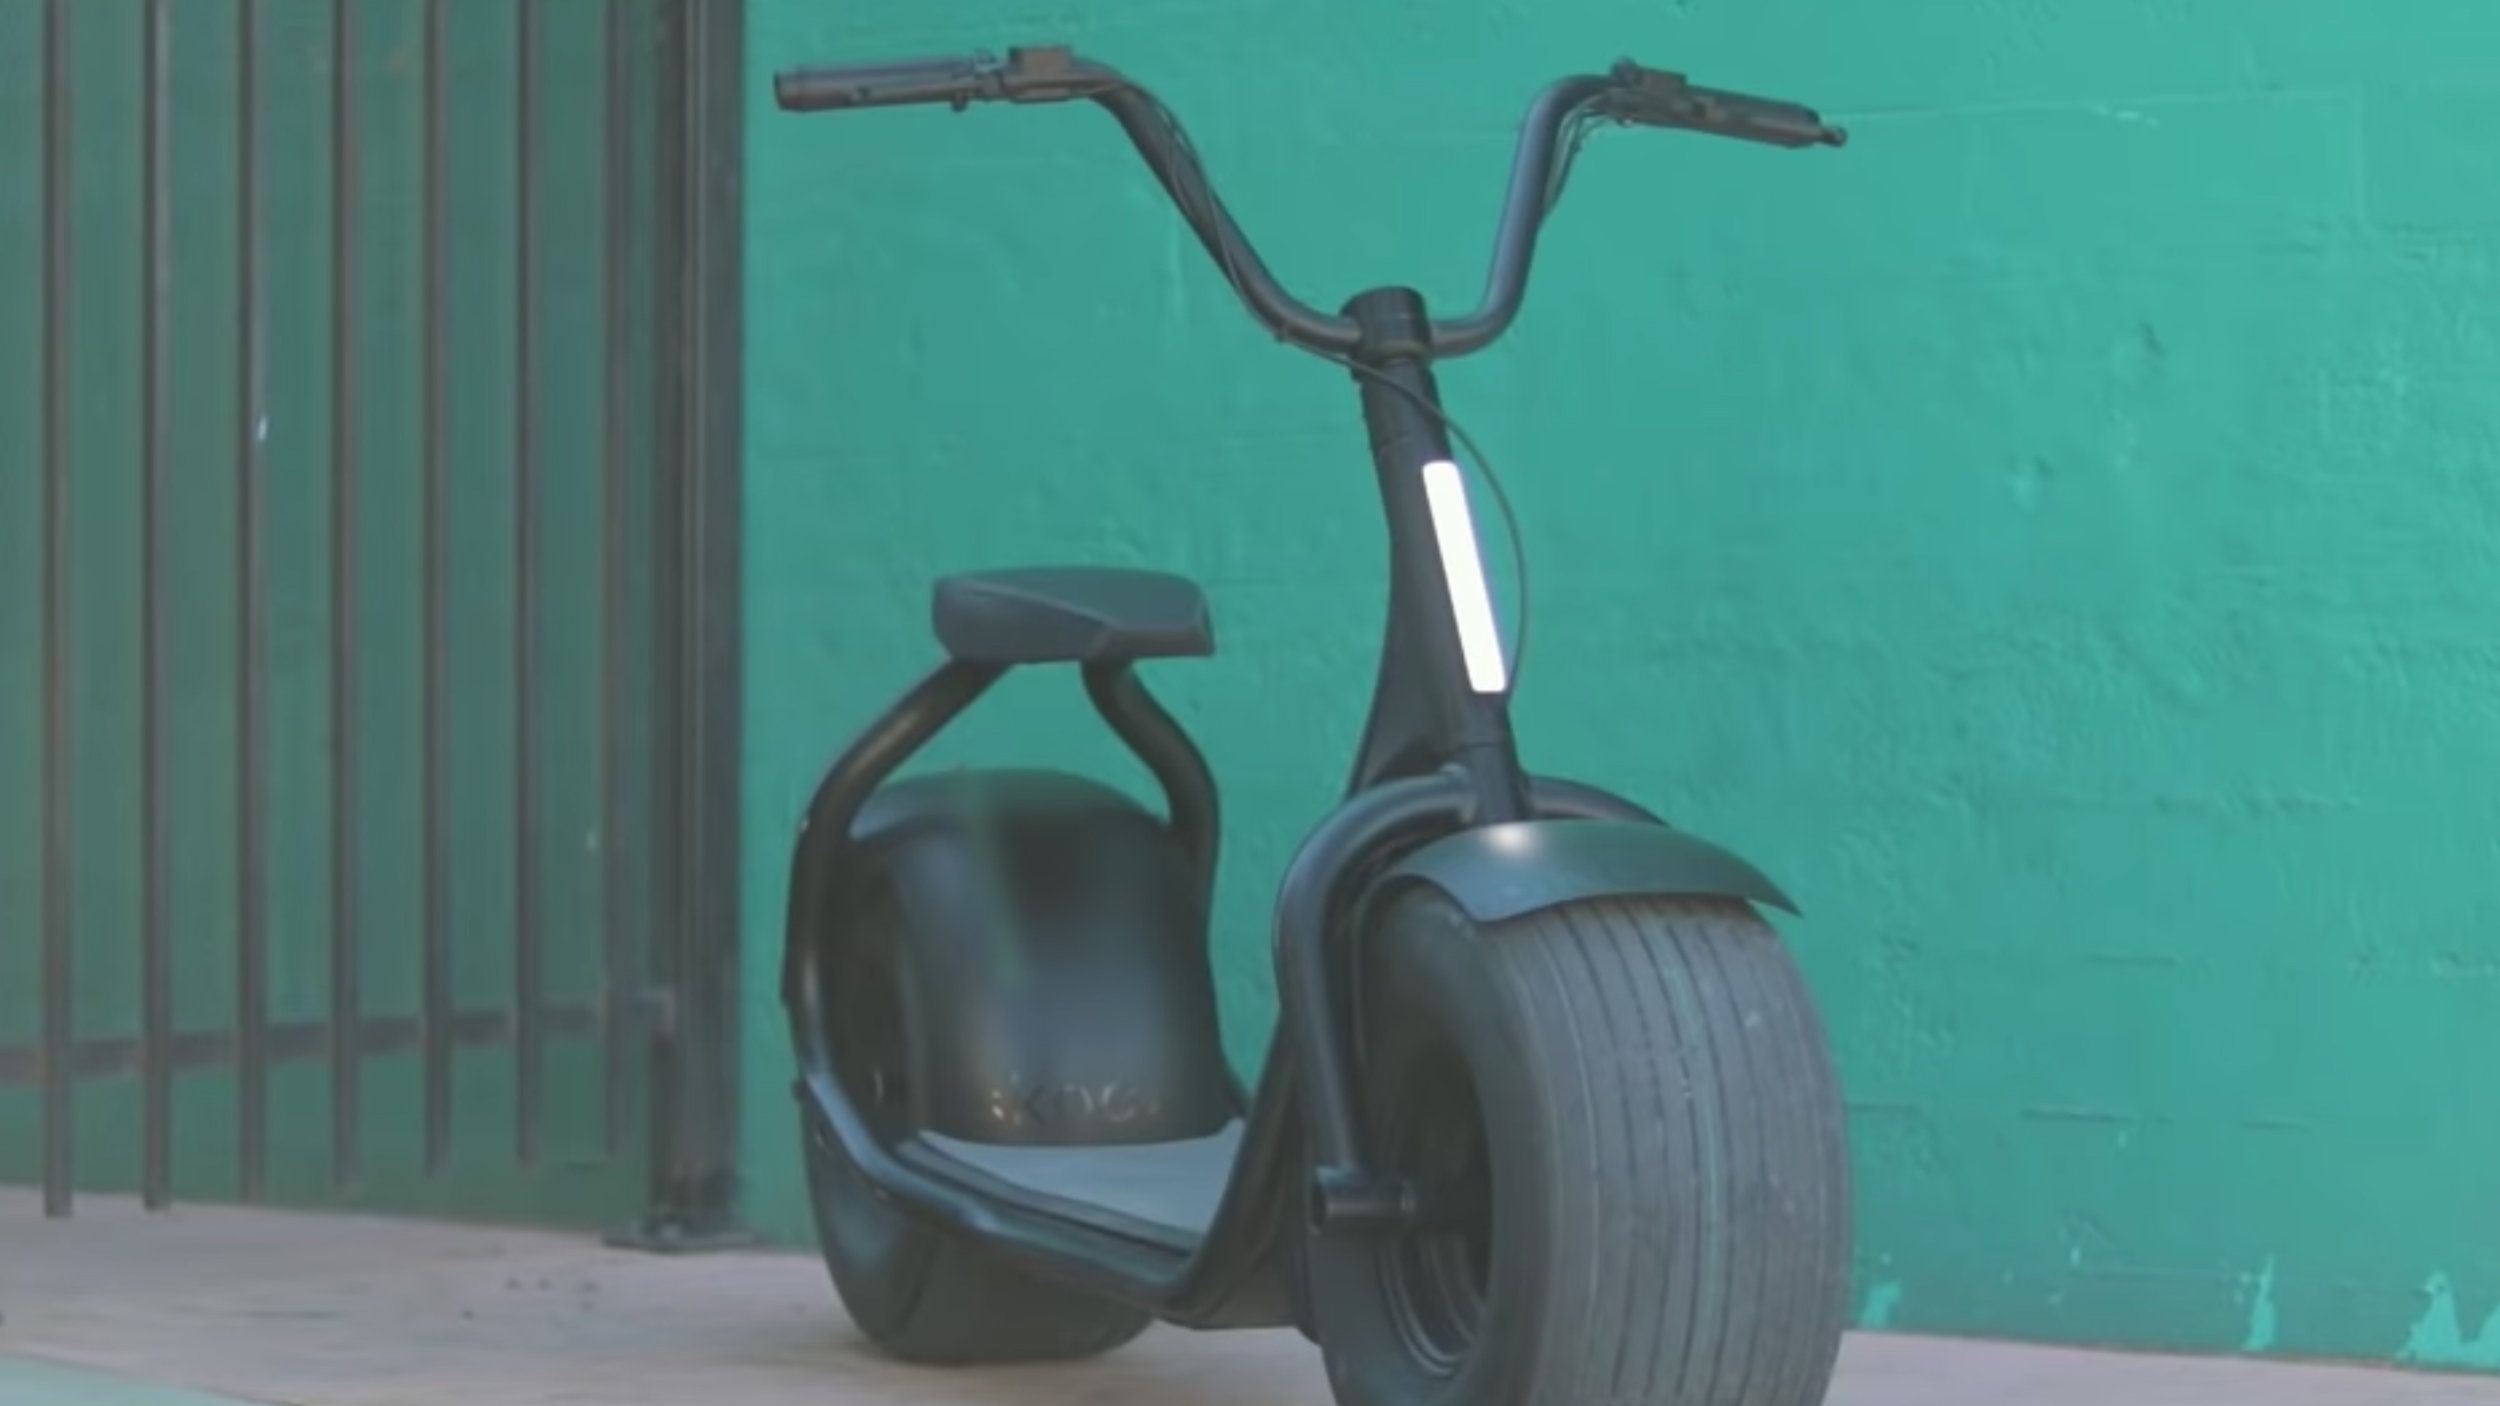 electrified-reviews-skooza-k1s-fat-tire-electric-scooter-review-front.jpg